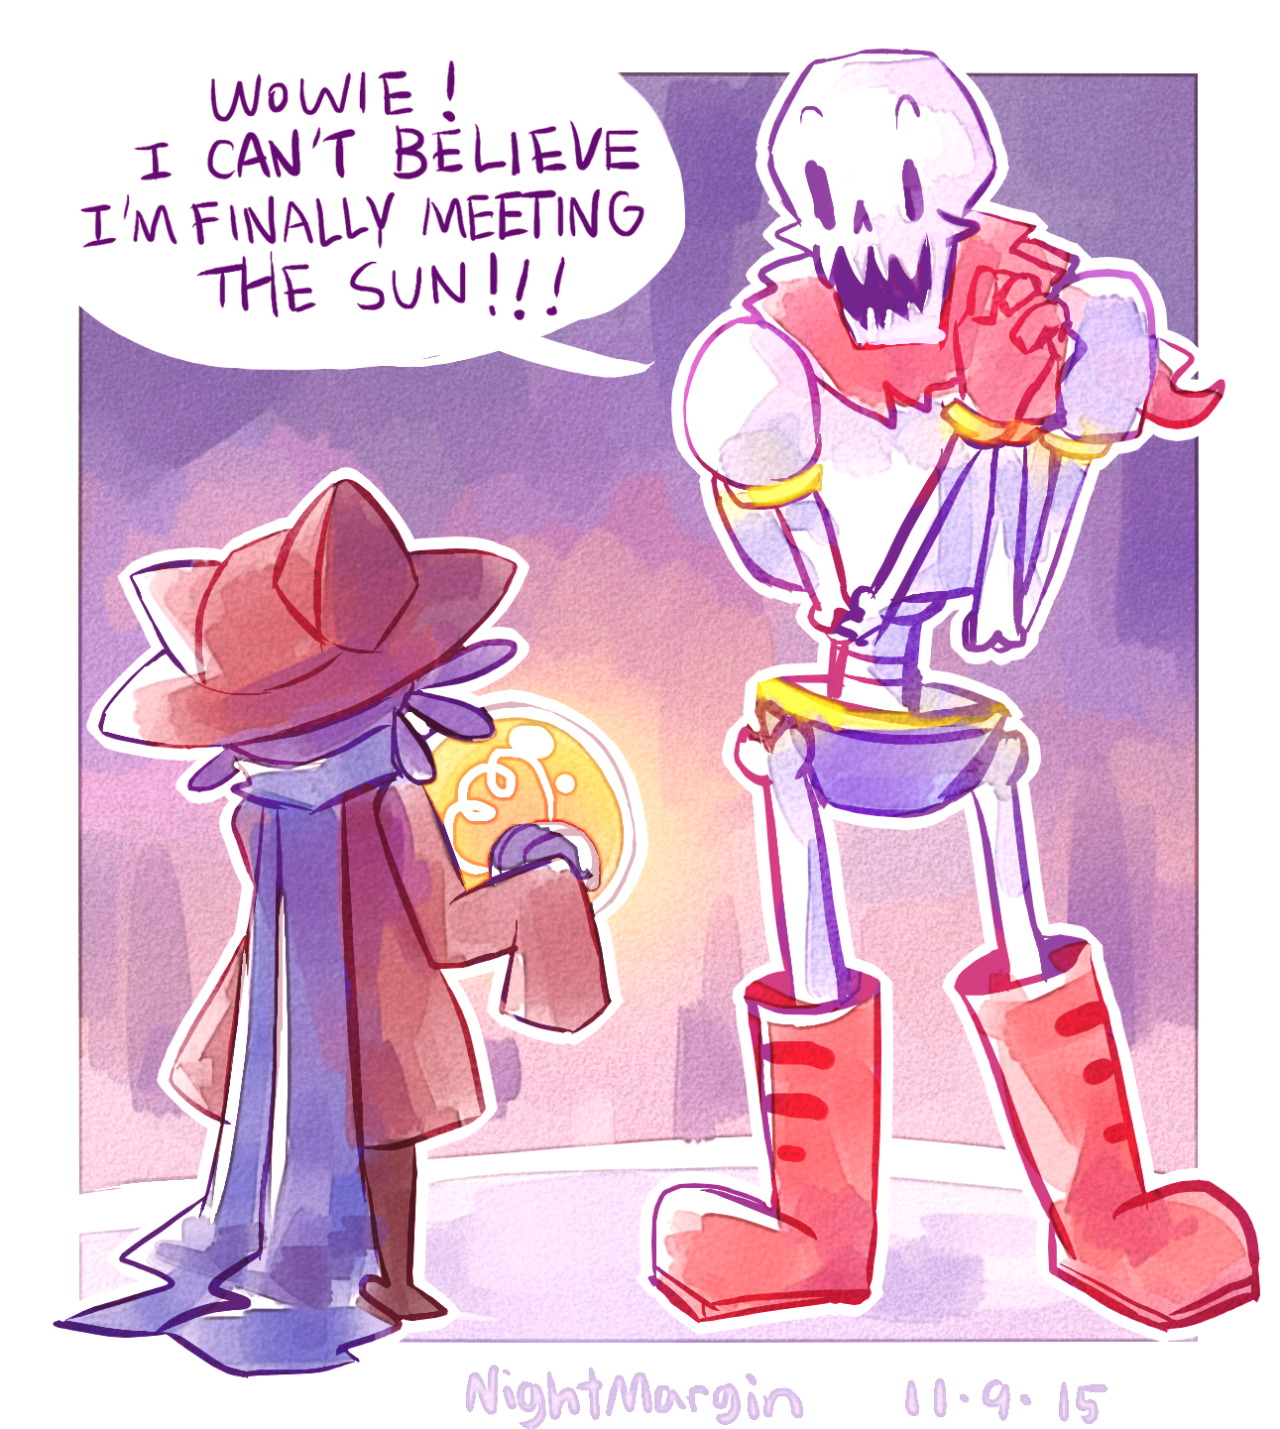 It's Your Berry Thief Boys, Back Again!